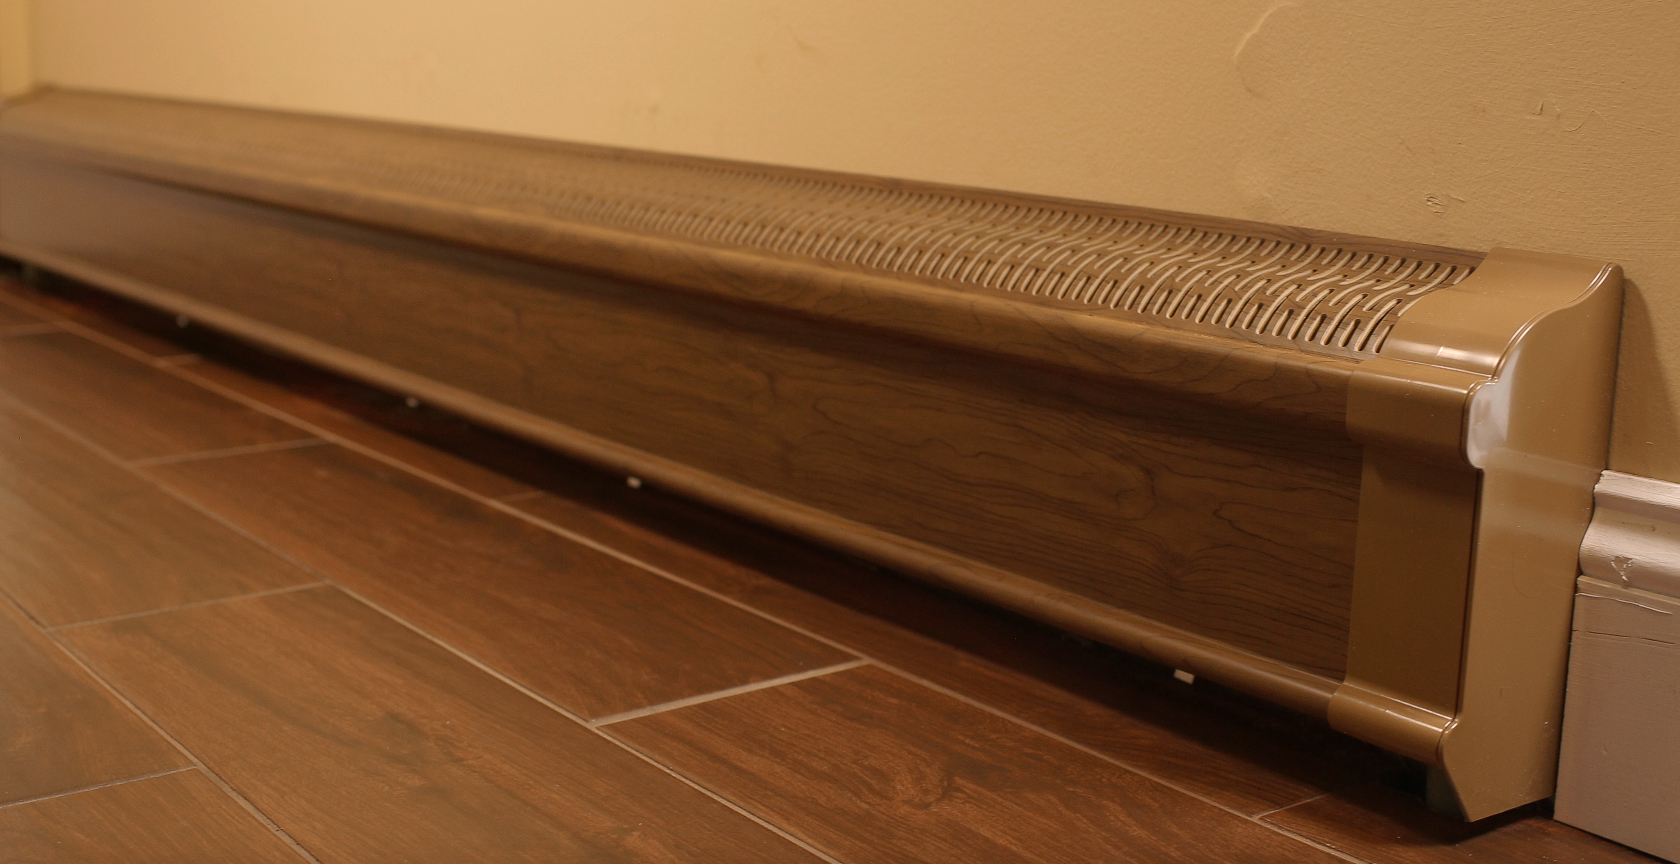 coverluxe-baseboards-walnut-after-9